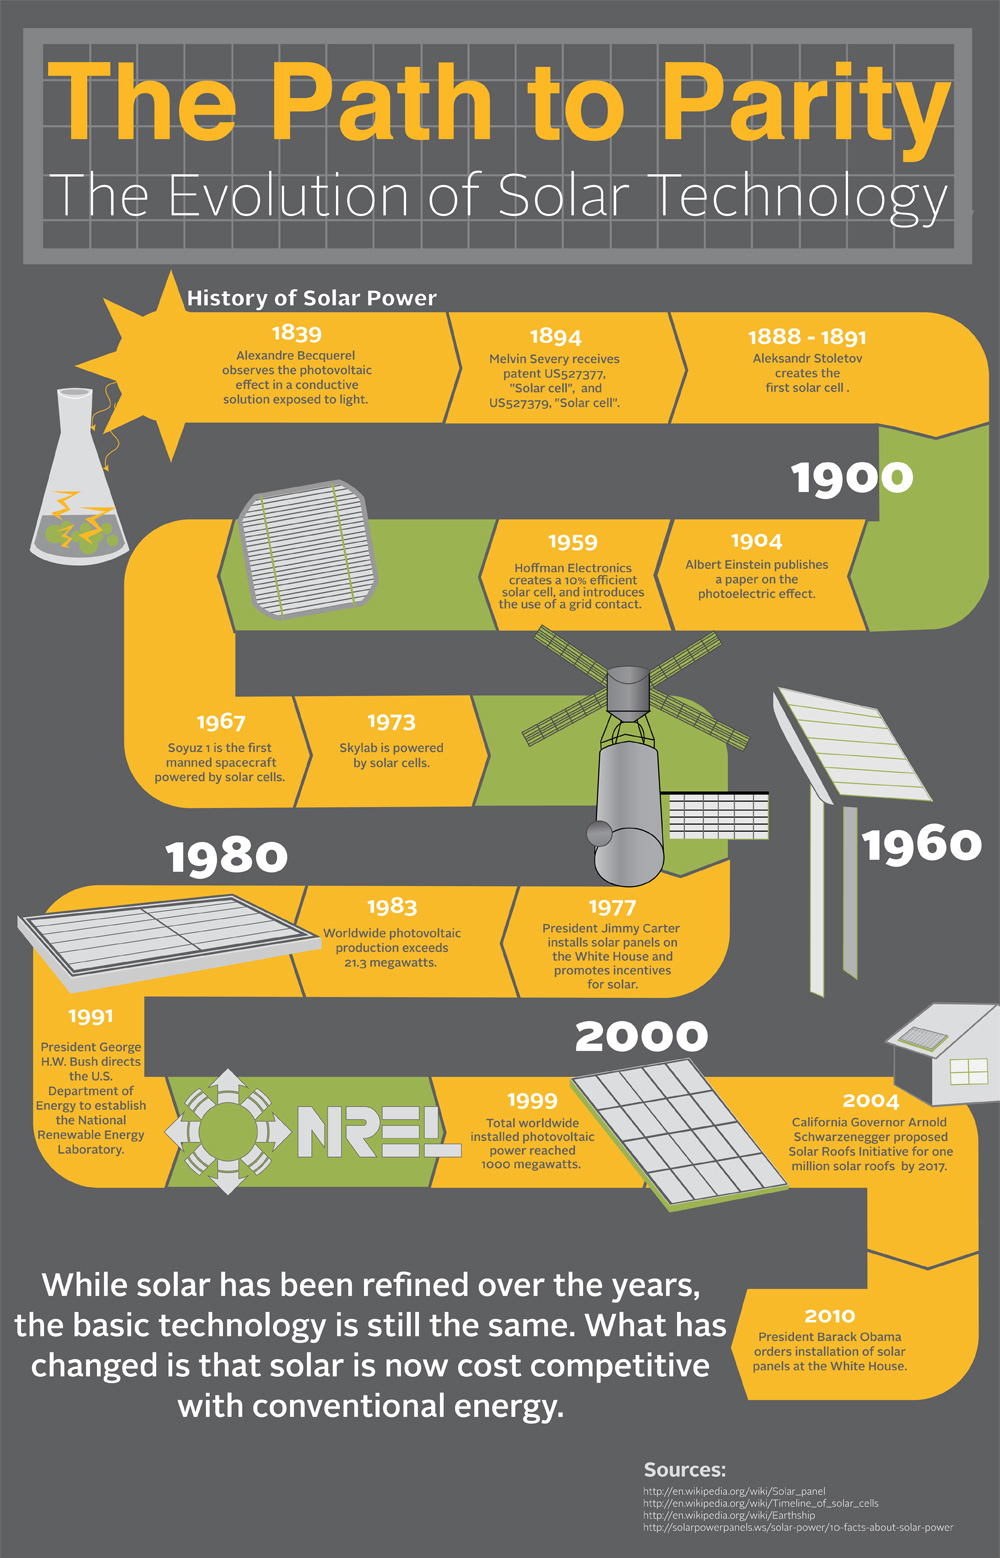 history-of-solar-technology-infographic.jpg